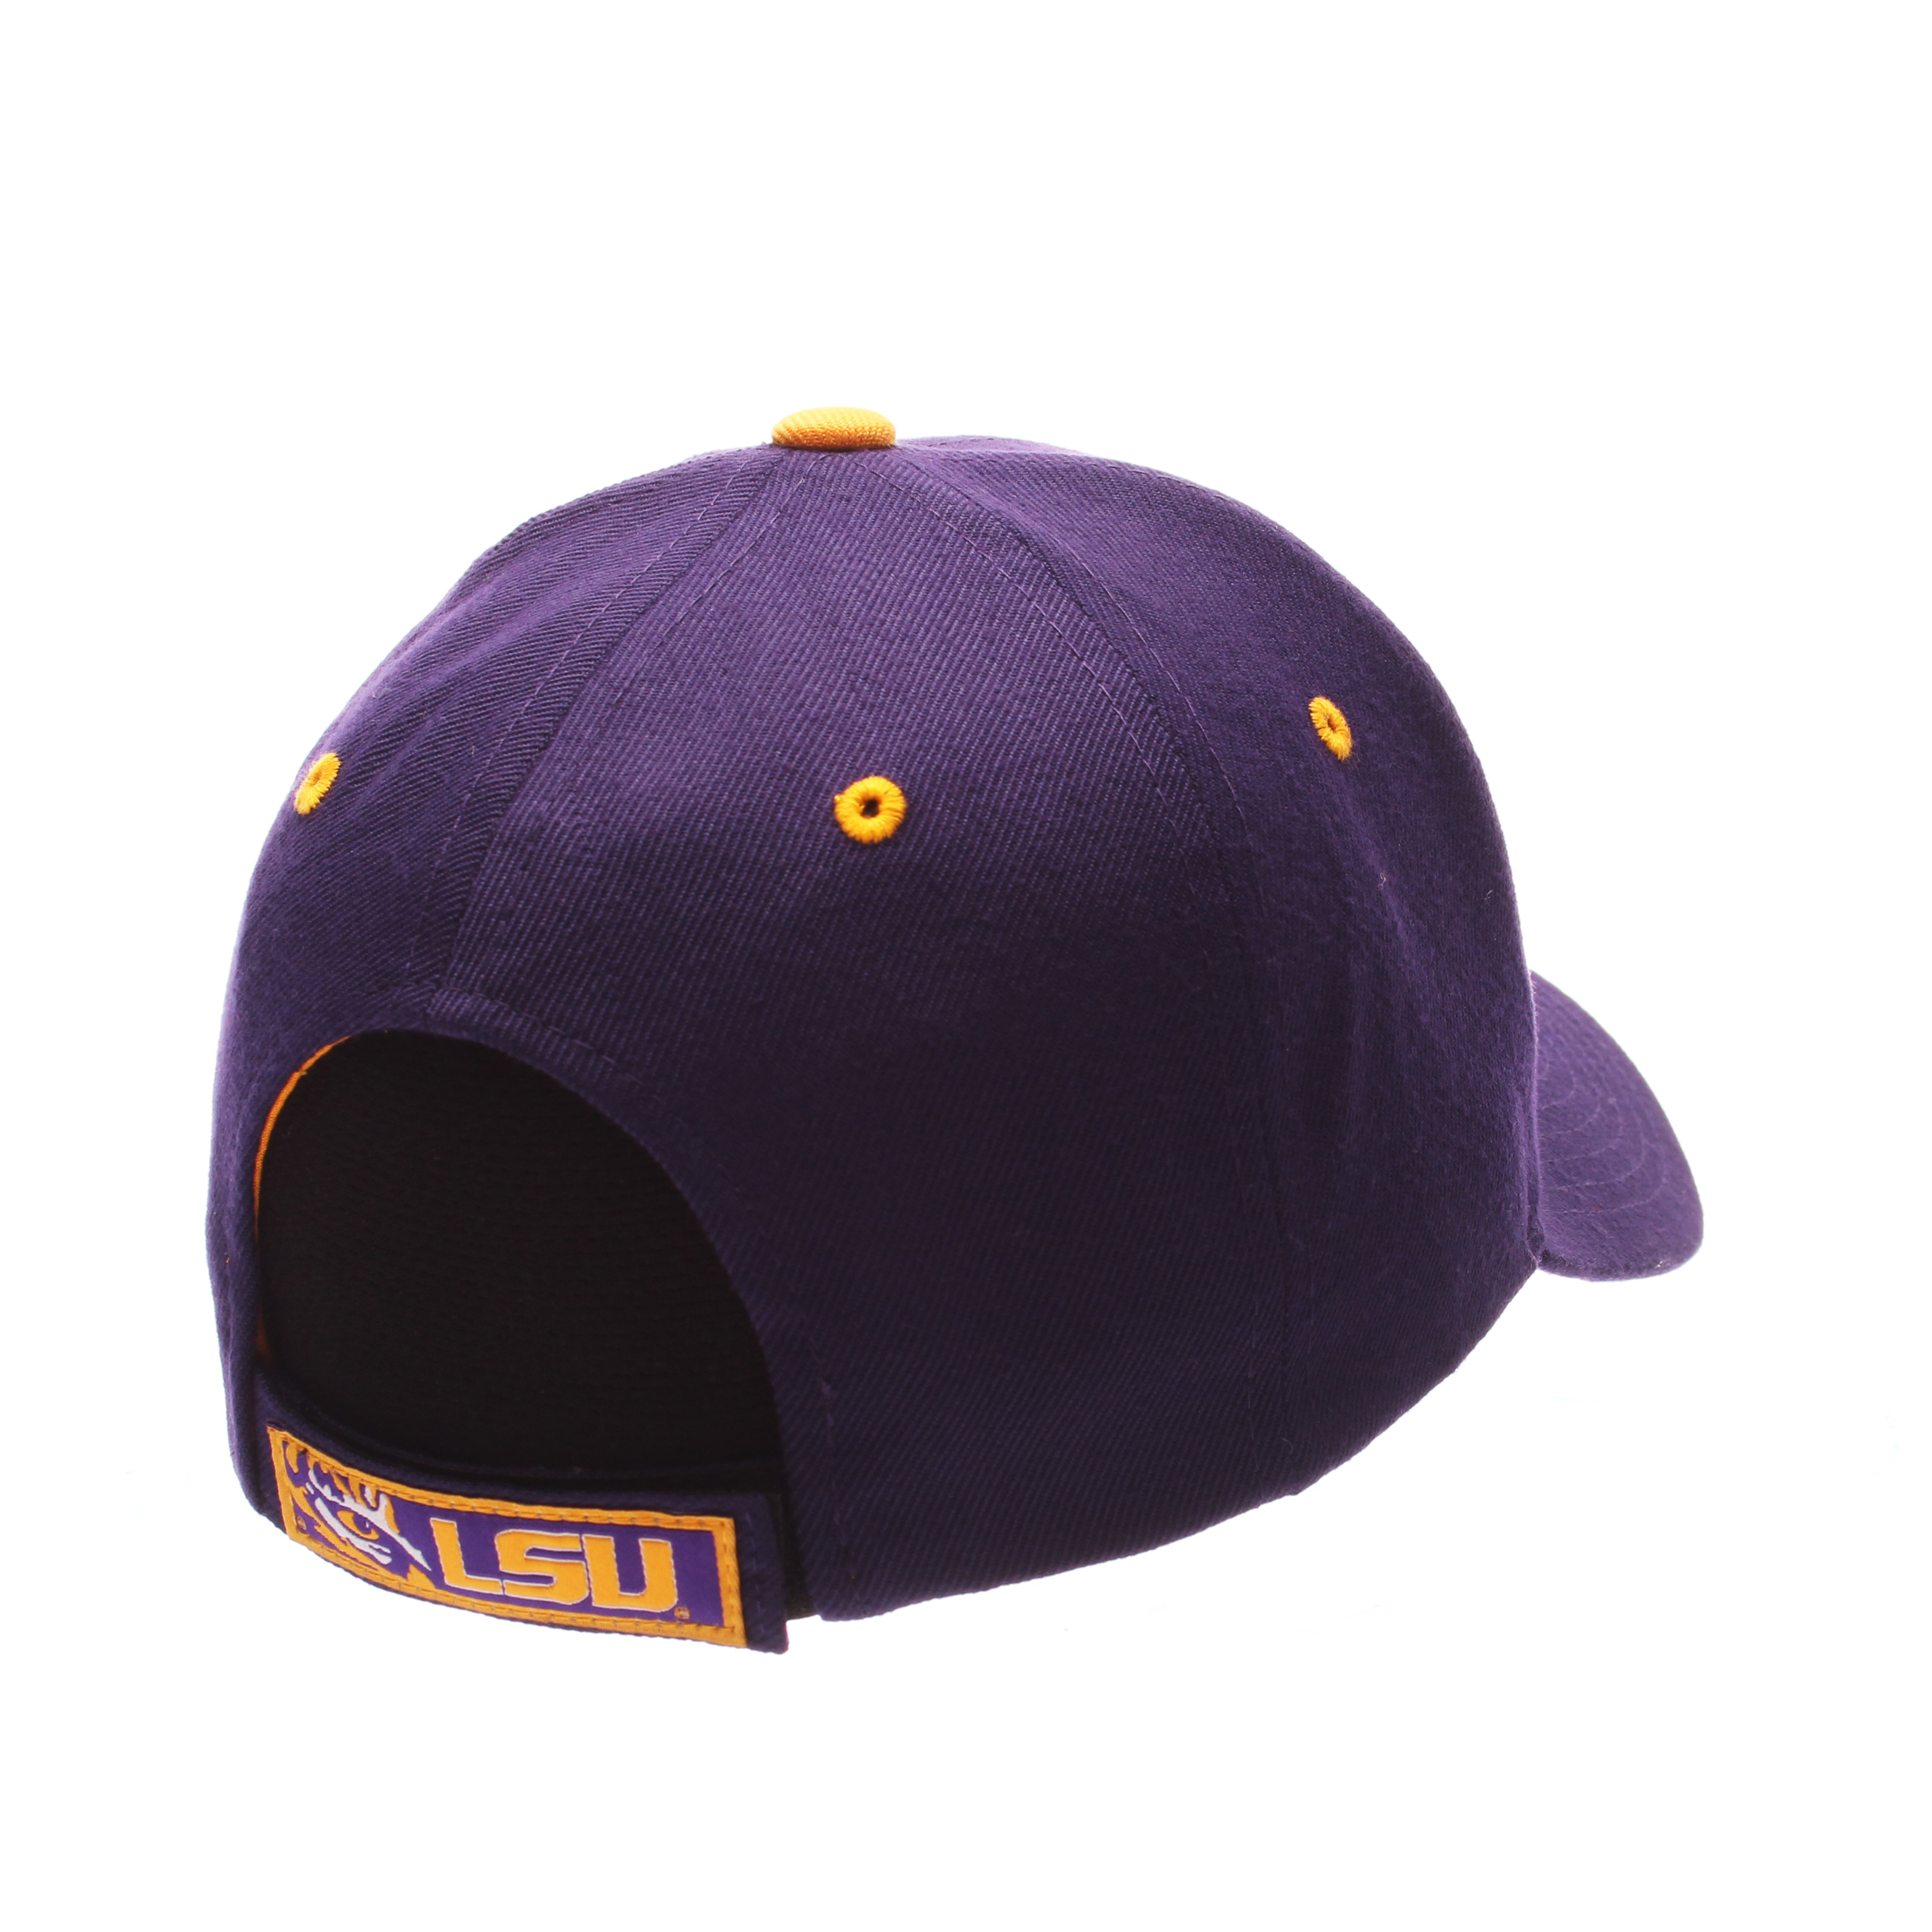 separation shoes a60fe b01f4 ... order lsu tigers official ncaa competitor adjustable hat cap by zephyr  968819 walmart 37e8c f0a6e